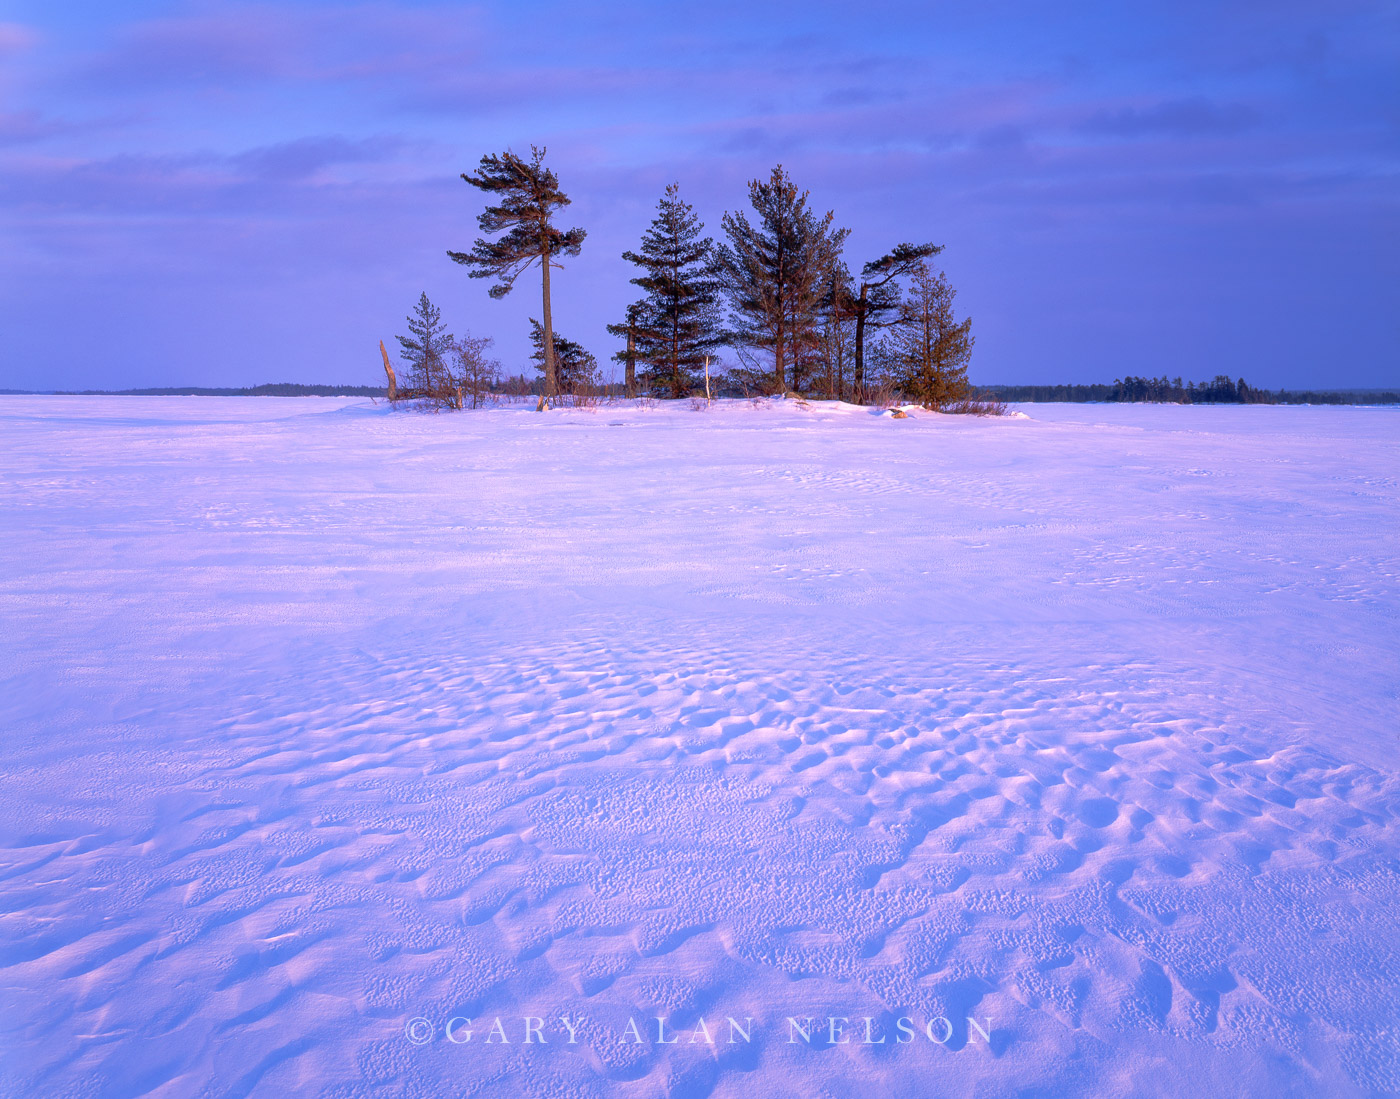 voyageurs national park, minnesota, snow, island, photo